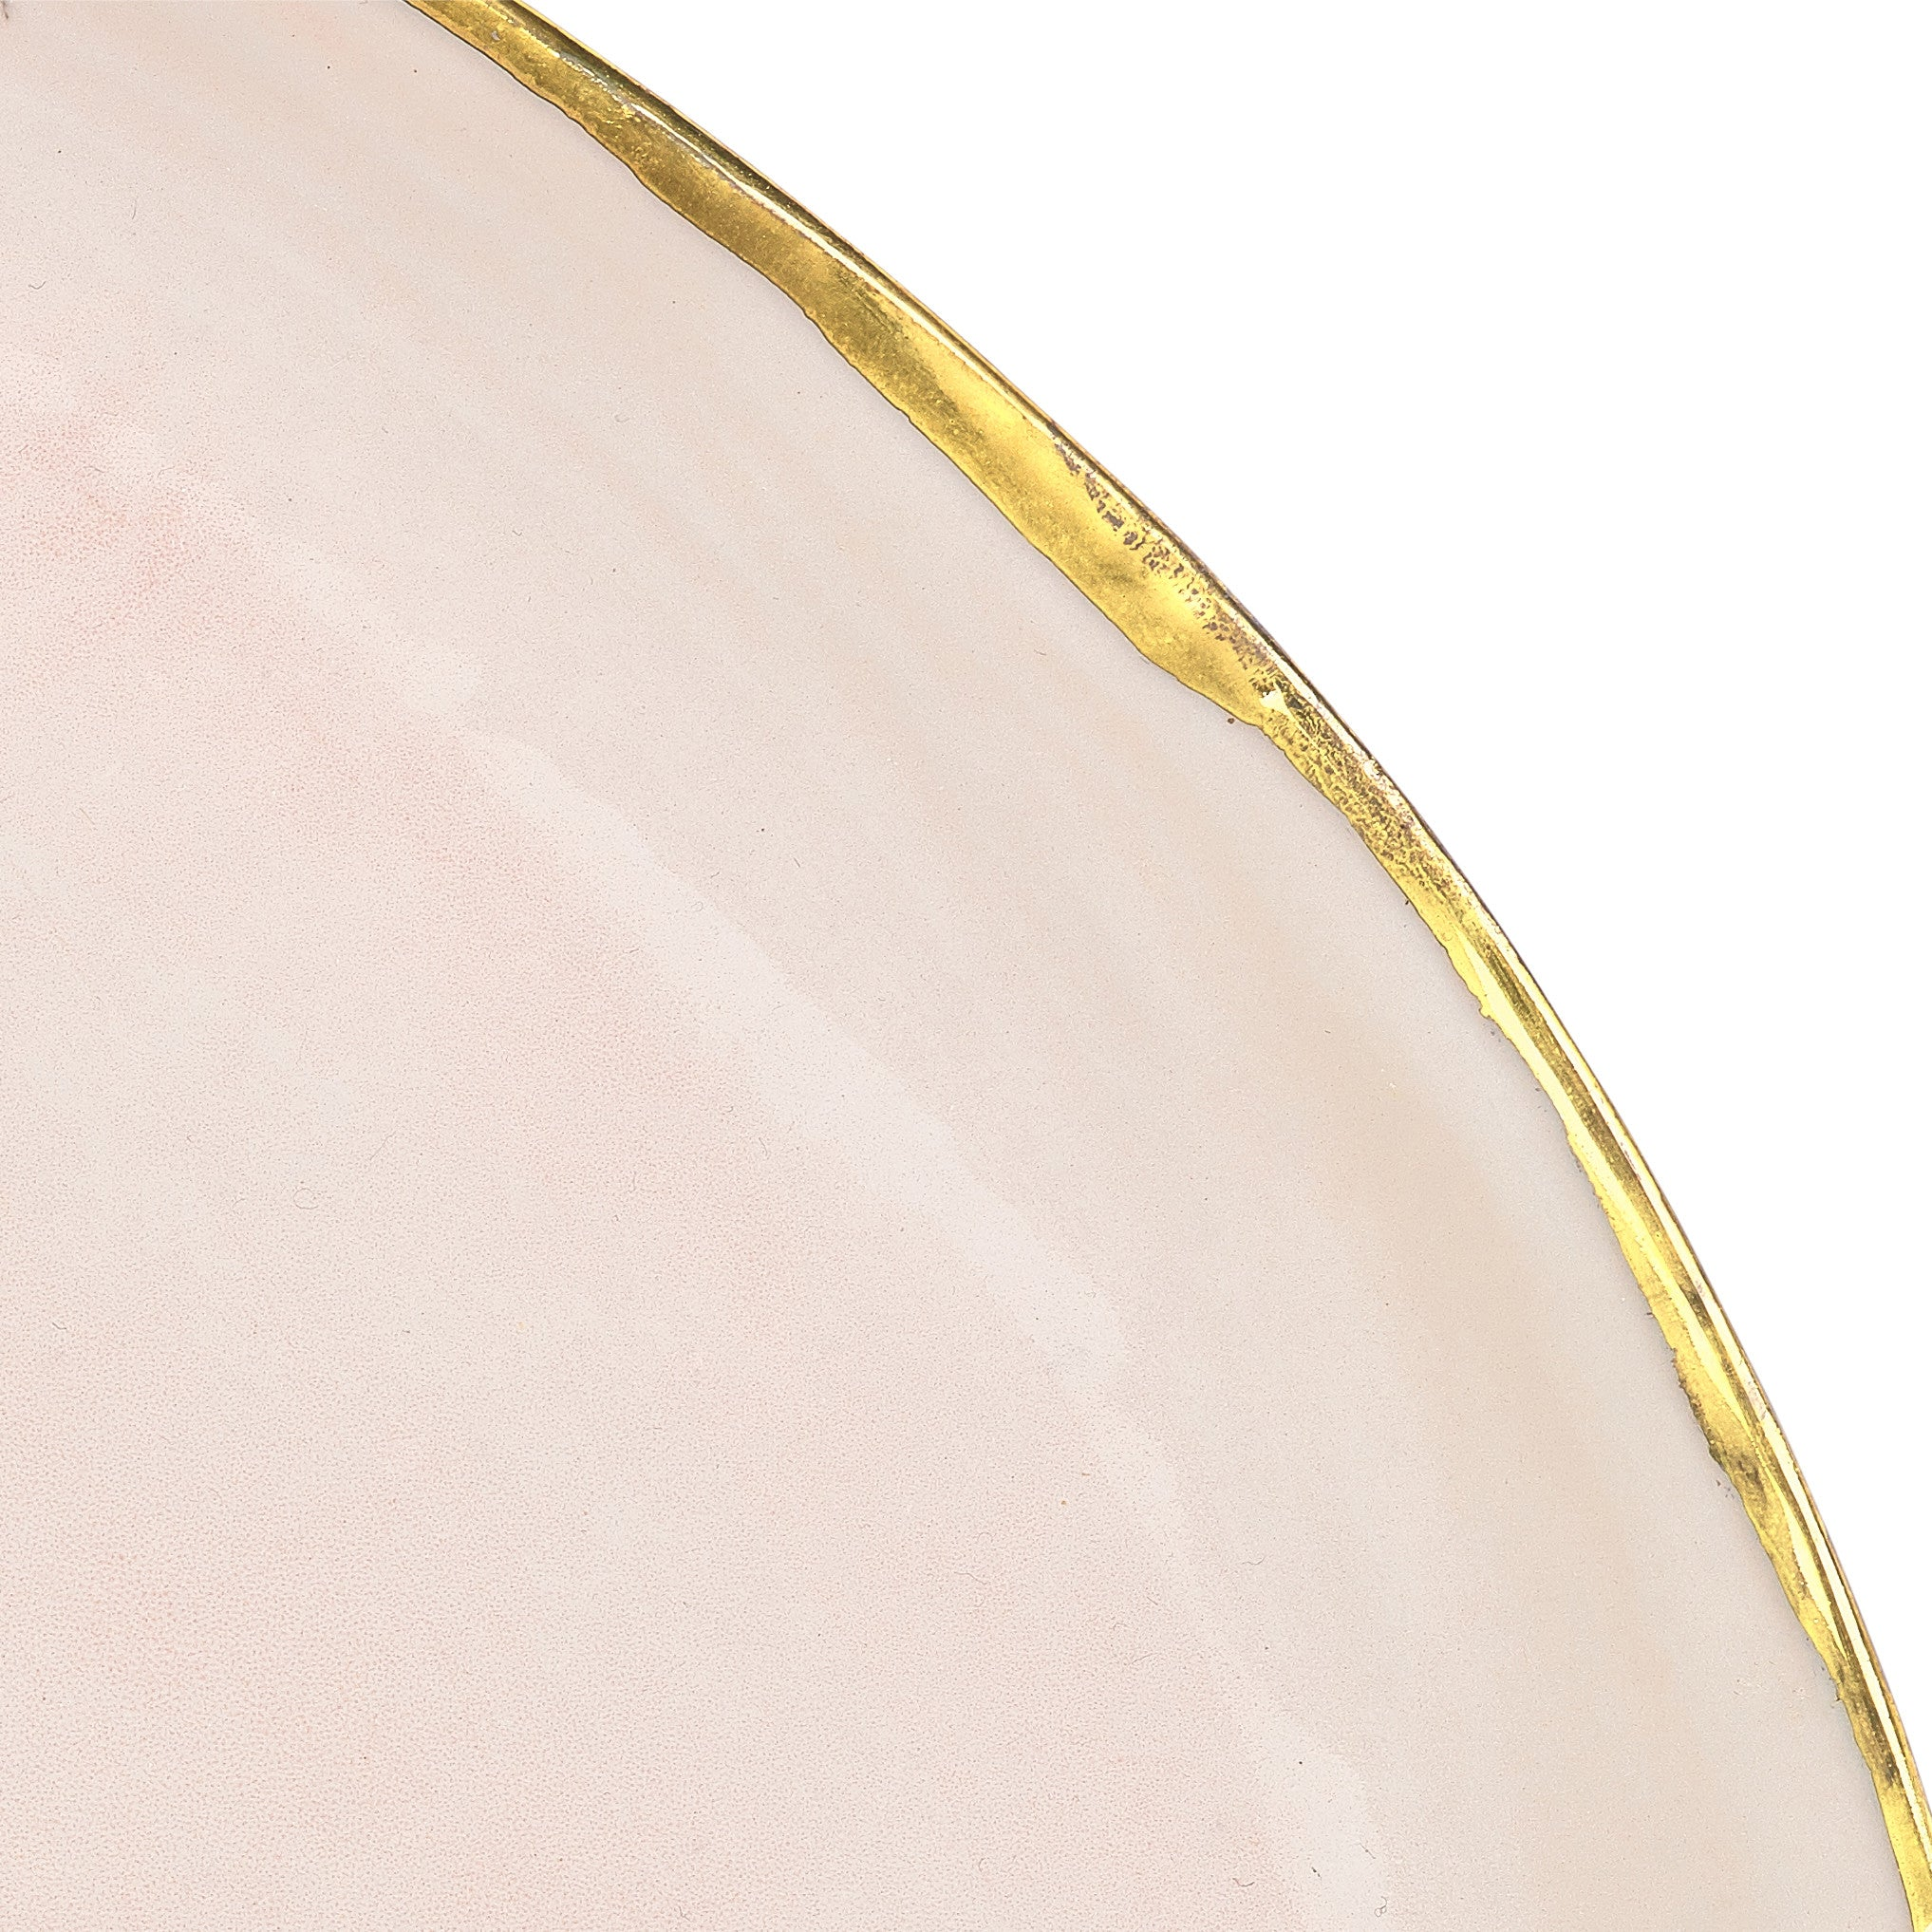 Large Pink Ceramic Plate with Gold Rim, 34cm